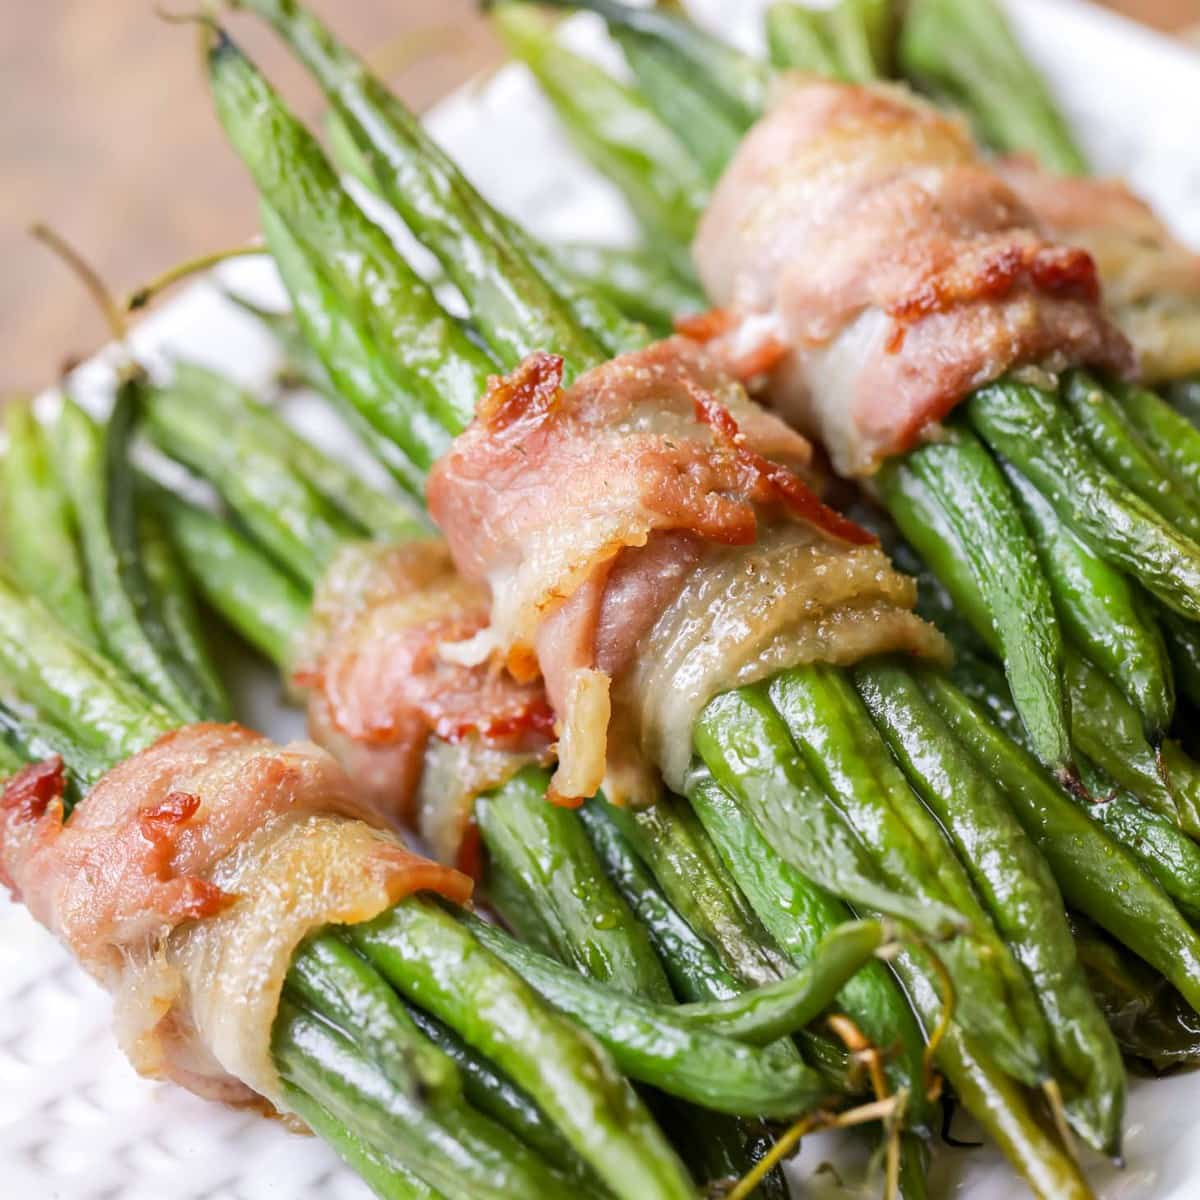 Christmas vegetable side dishes - green bean bundles perfect as Christmas side dishes